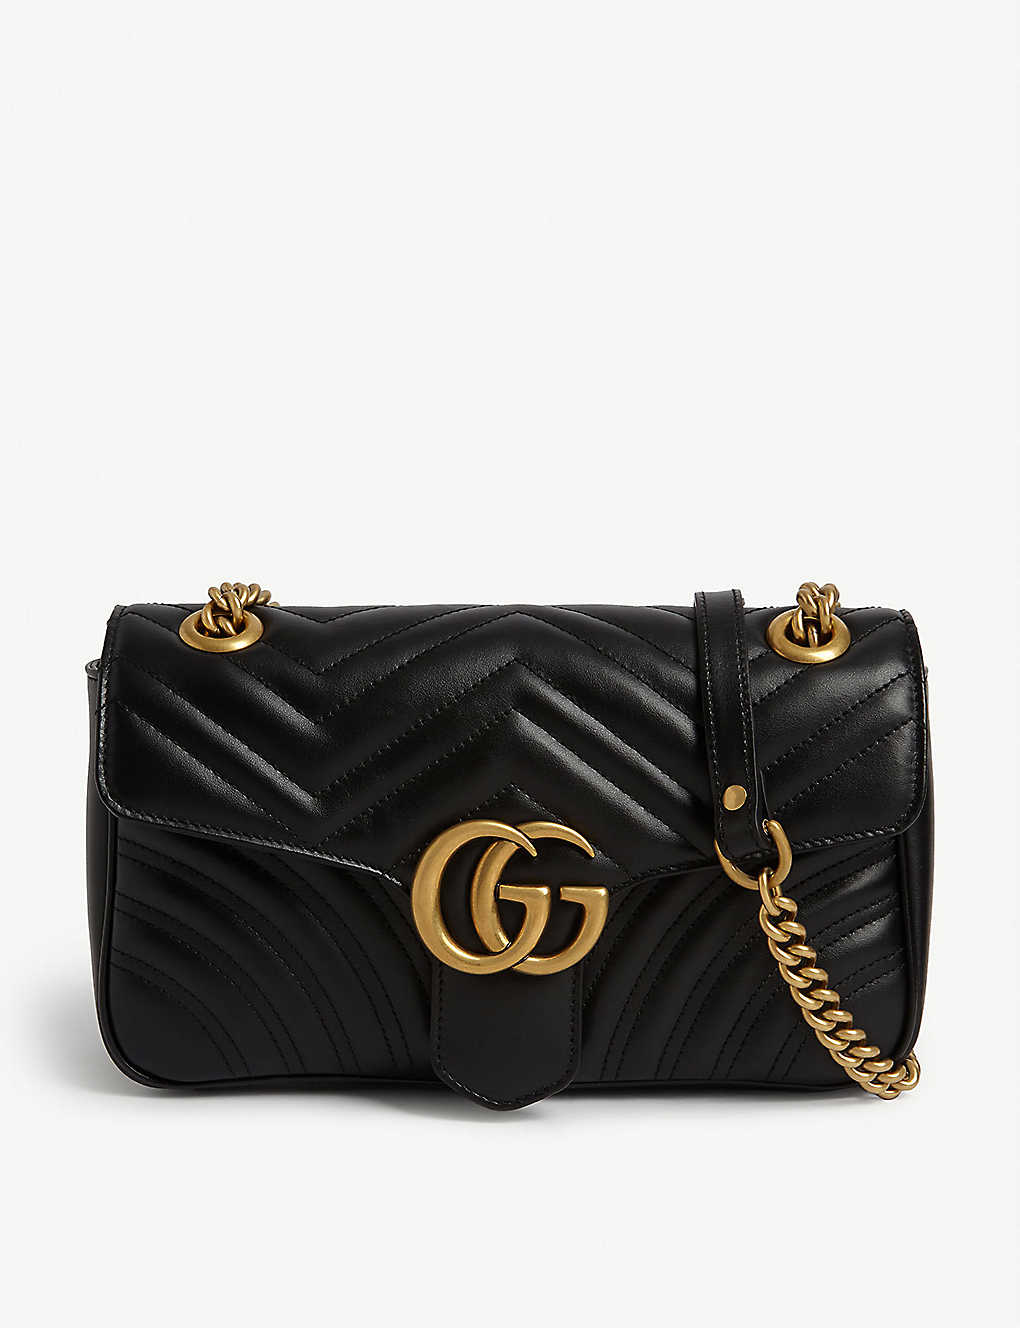 313c17ee6 GUCCI - Marmont leather shoulder bag | Selfridges.com